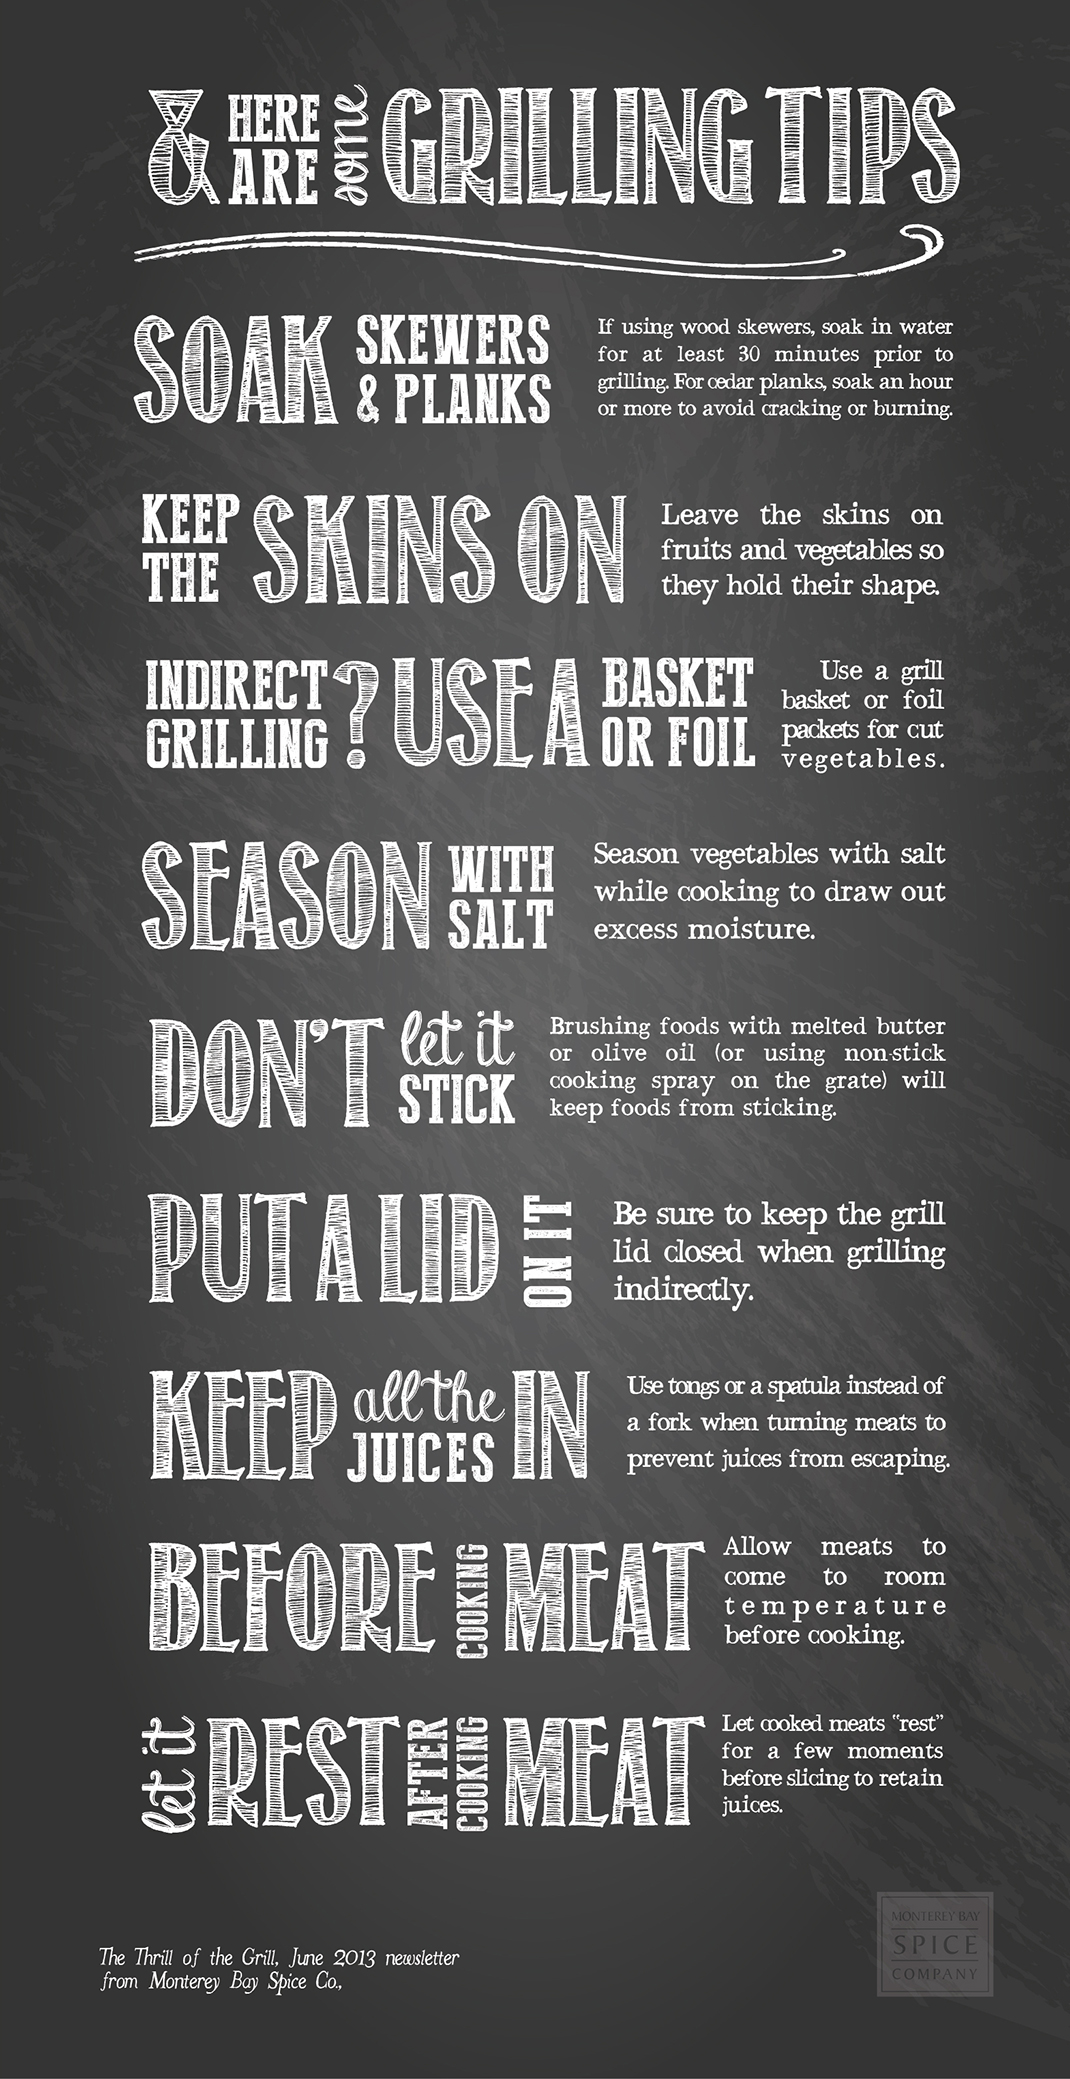 [ Info: Tips For Grilling ] ~ from Monterey Bay Spice Co